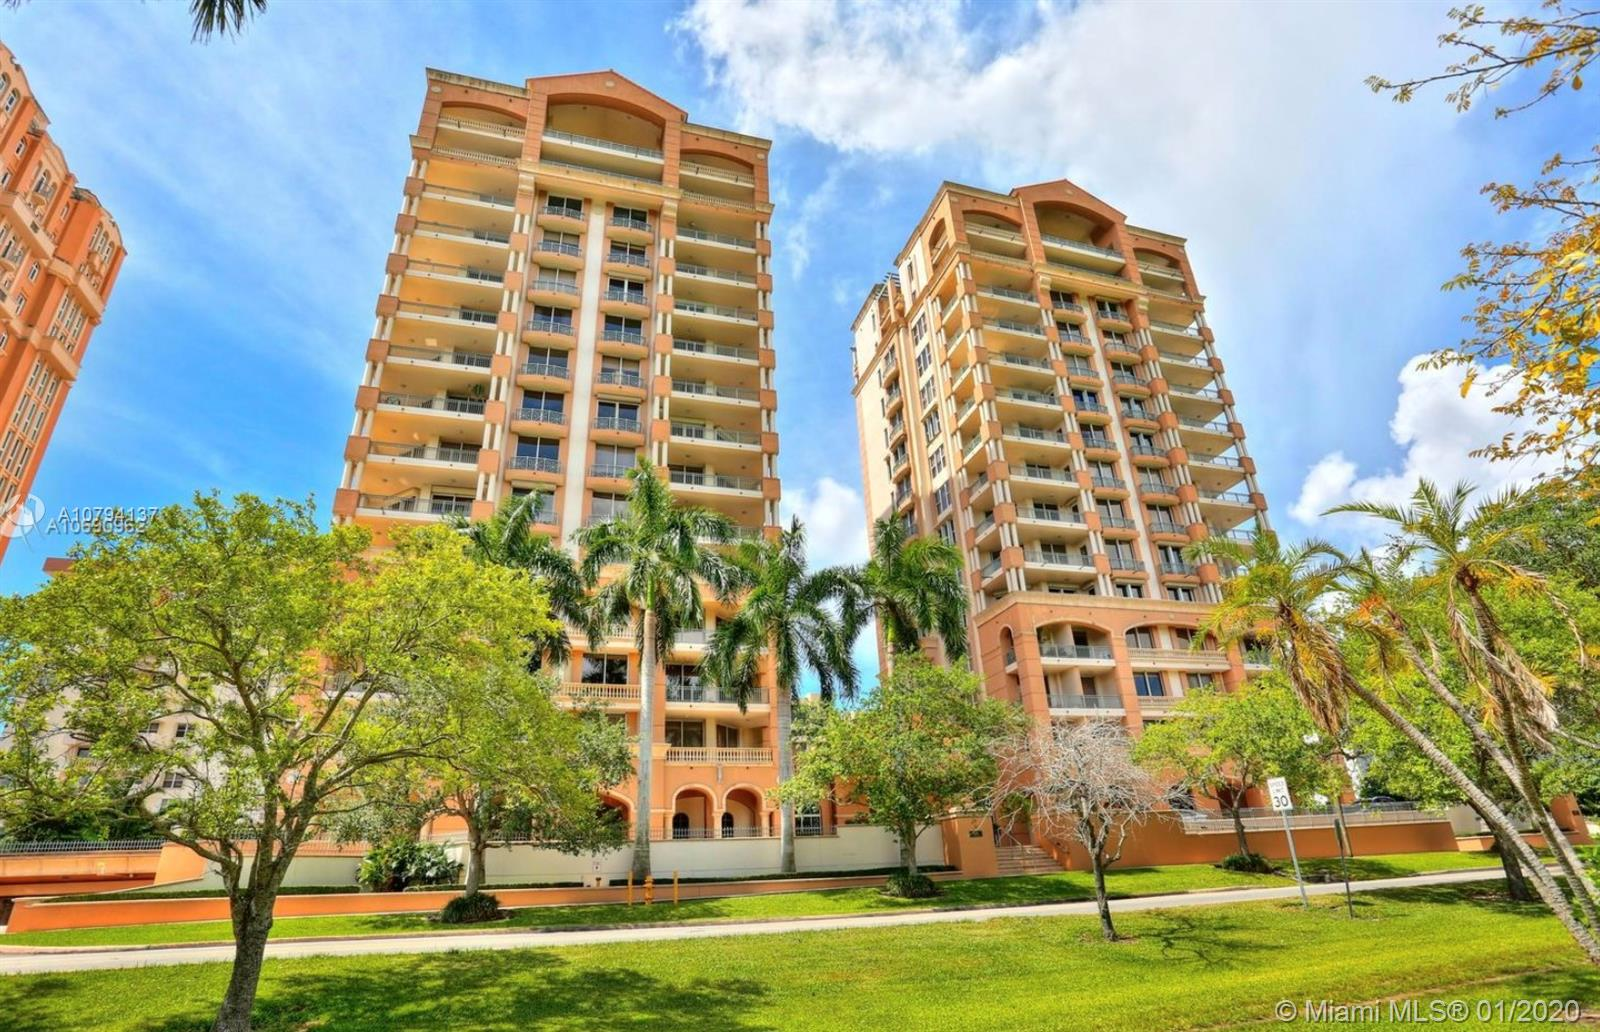 626 Coral Way 601, Coral Gables, FL 33134